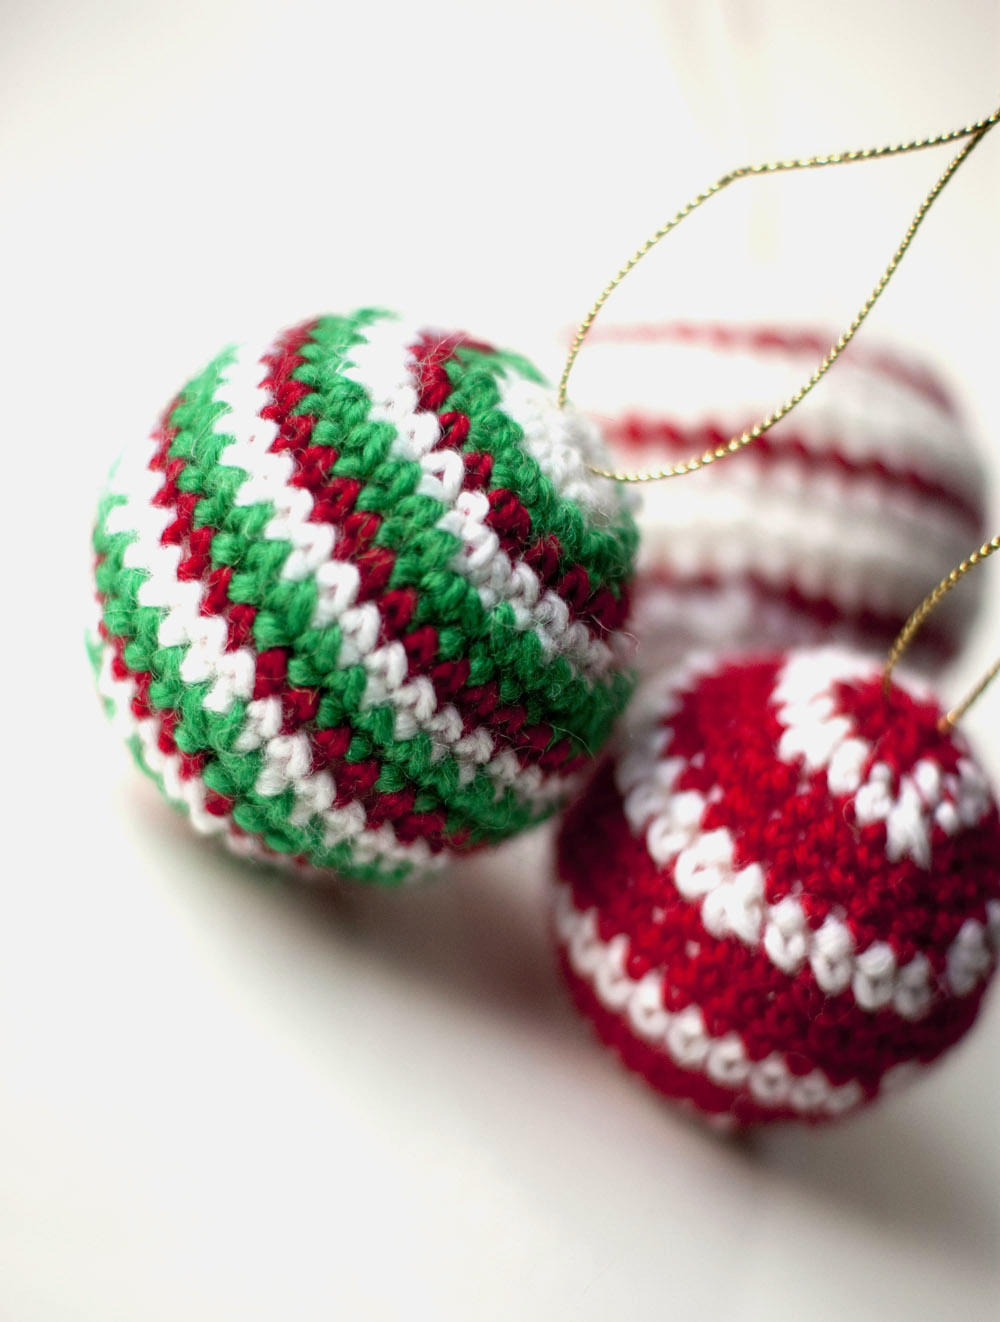 Free Thread Crochet Christmas Ornaments Patterns : Sofia Sobeide: Crocheted Christmas Ornaments Baubles ...